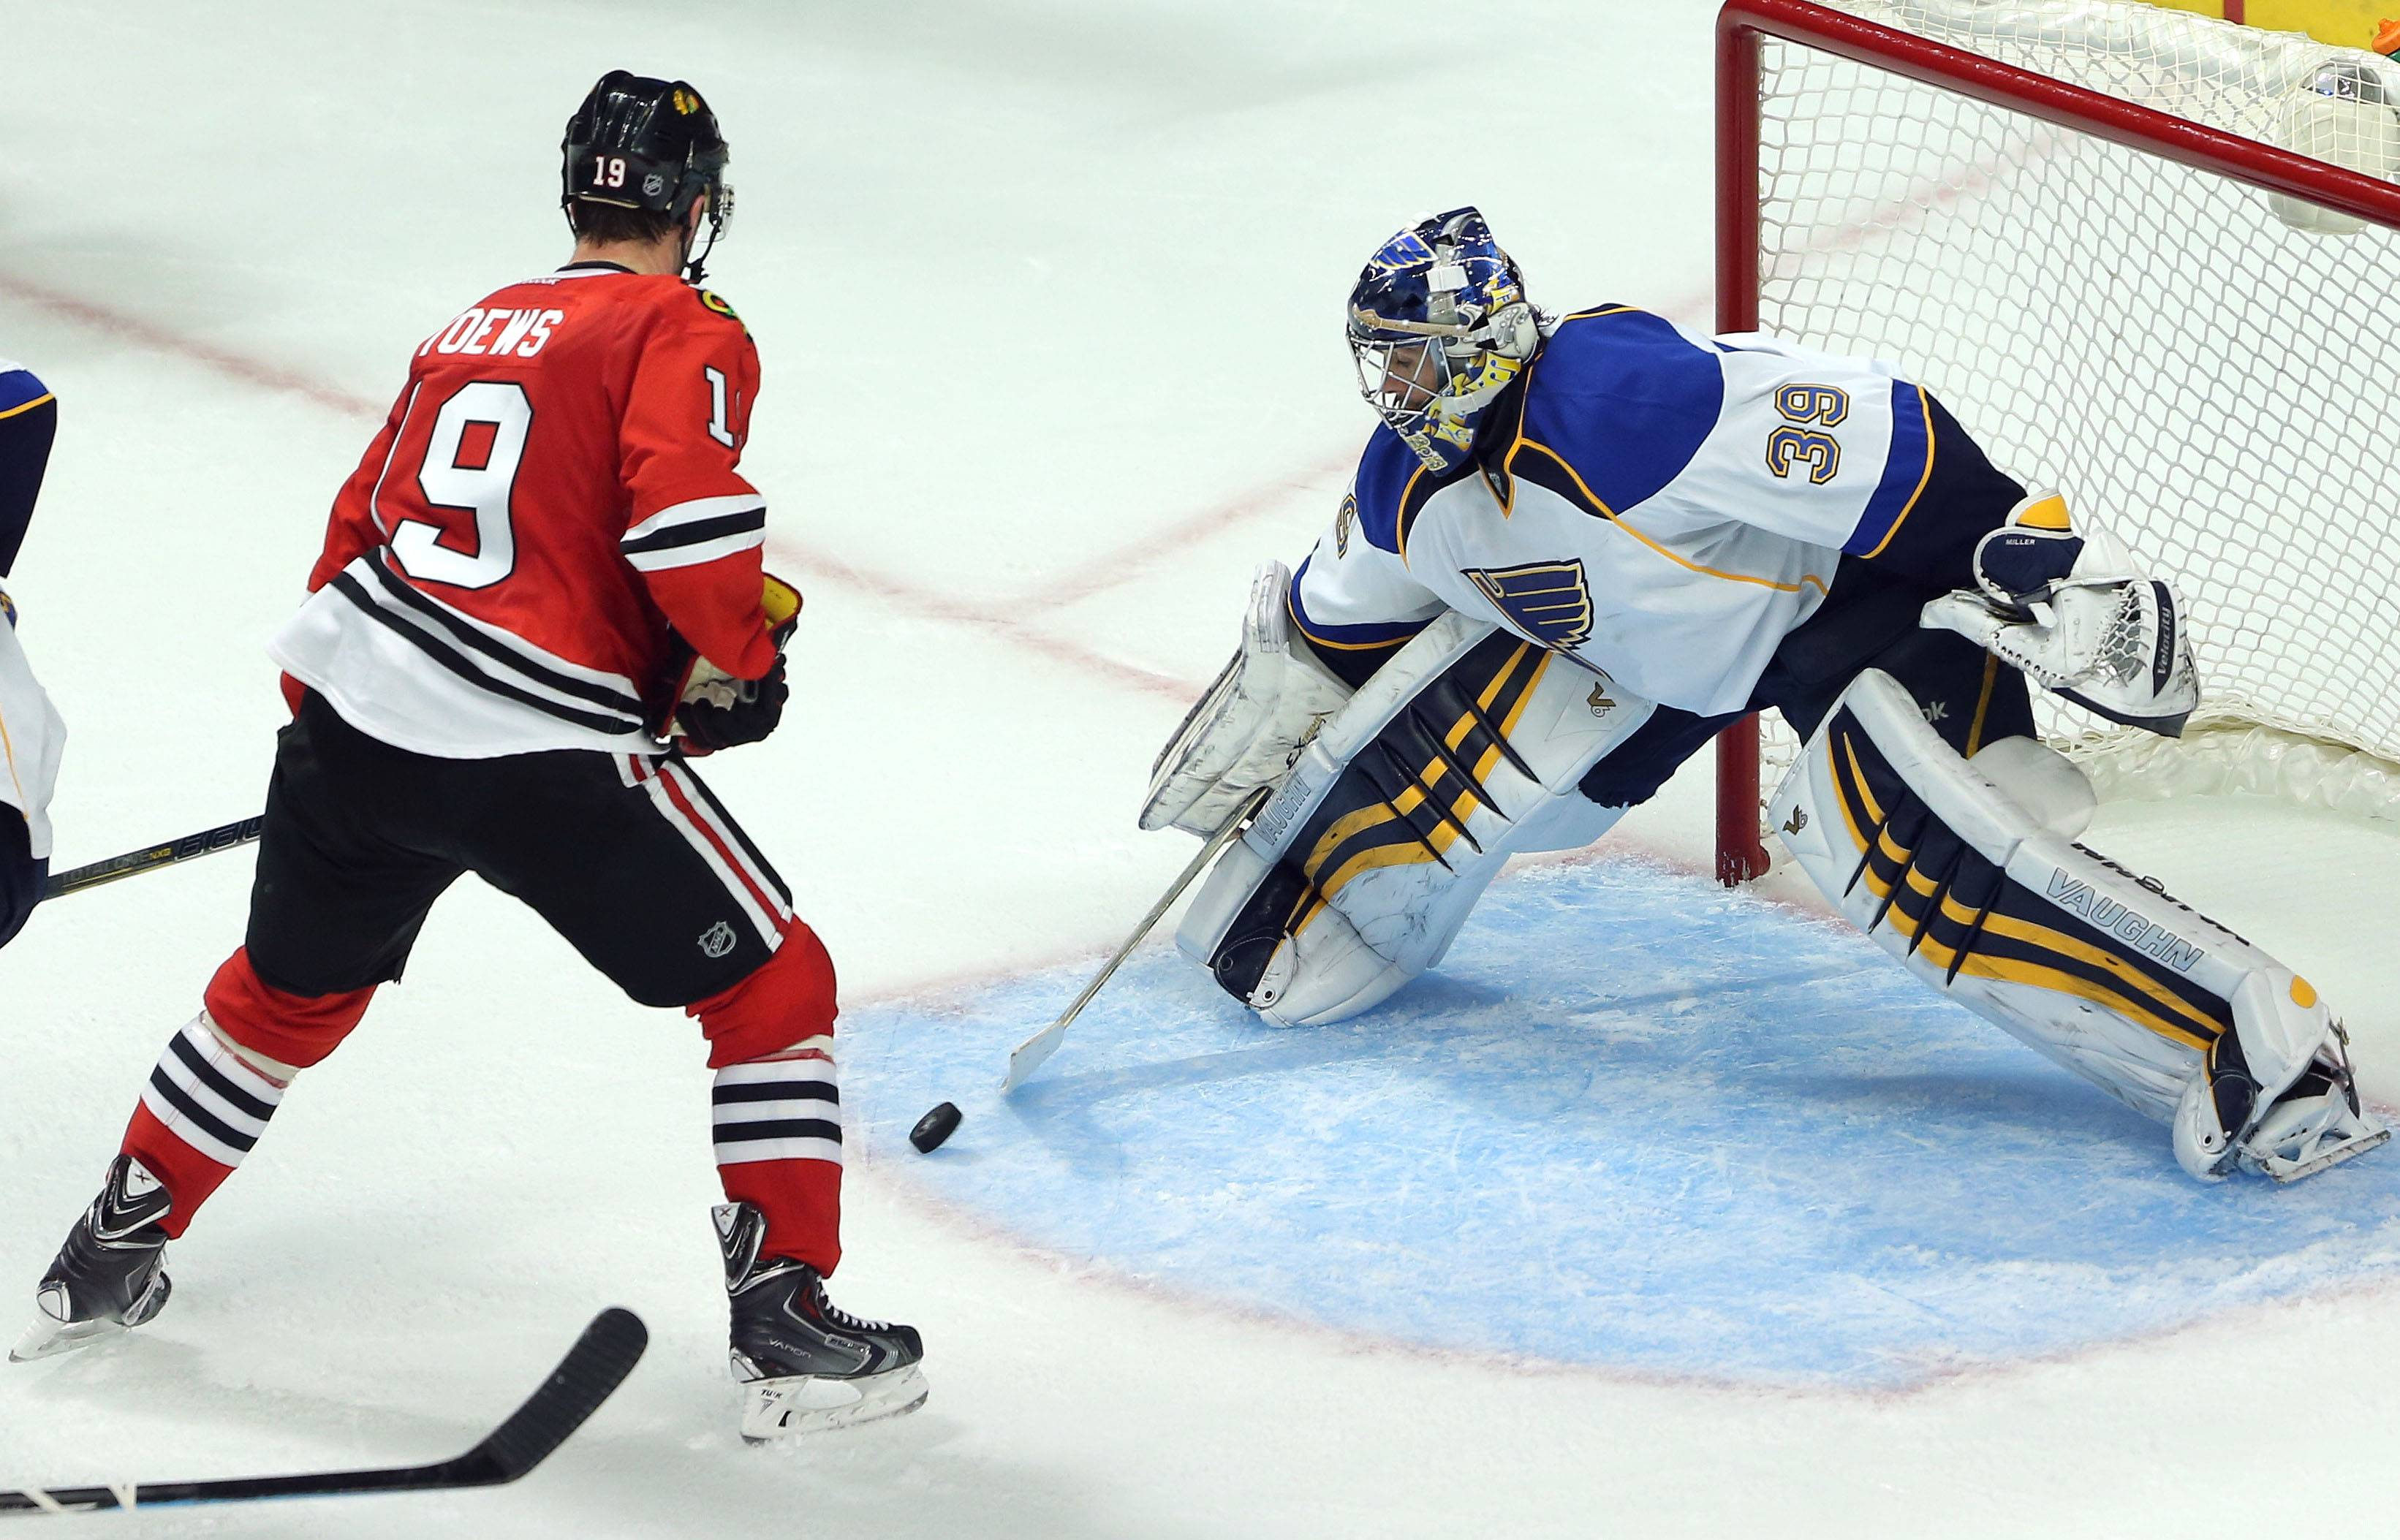 Blackhawks center Jonathan Toews drives on St. Louis Blues goalie Ryan Miller during game 3 of the NHL first-round Stanley Cup playoffs Monday night in Chicago.